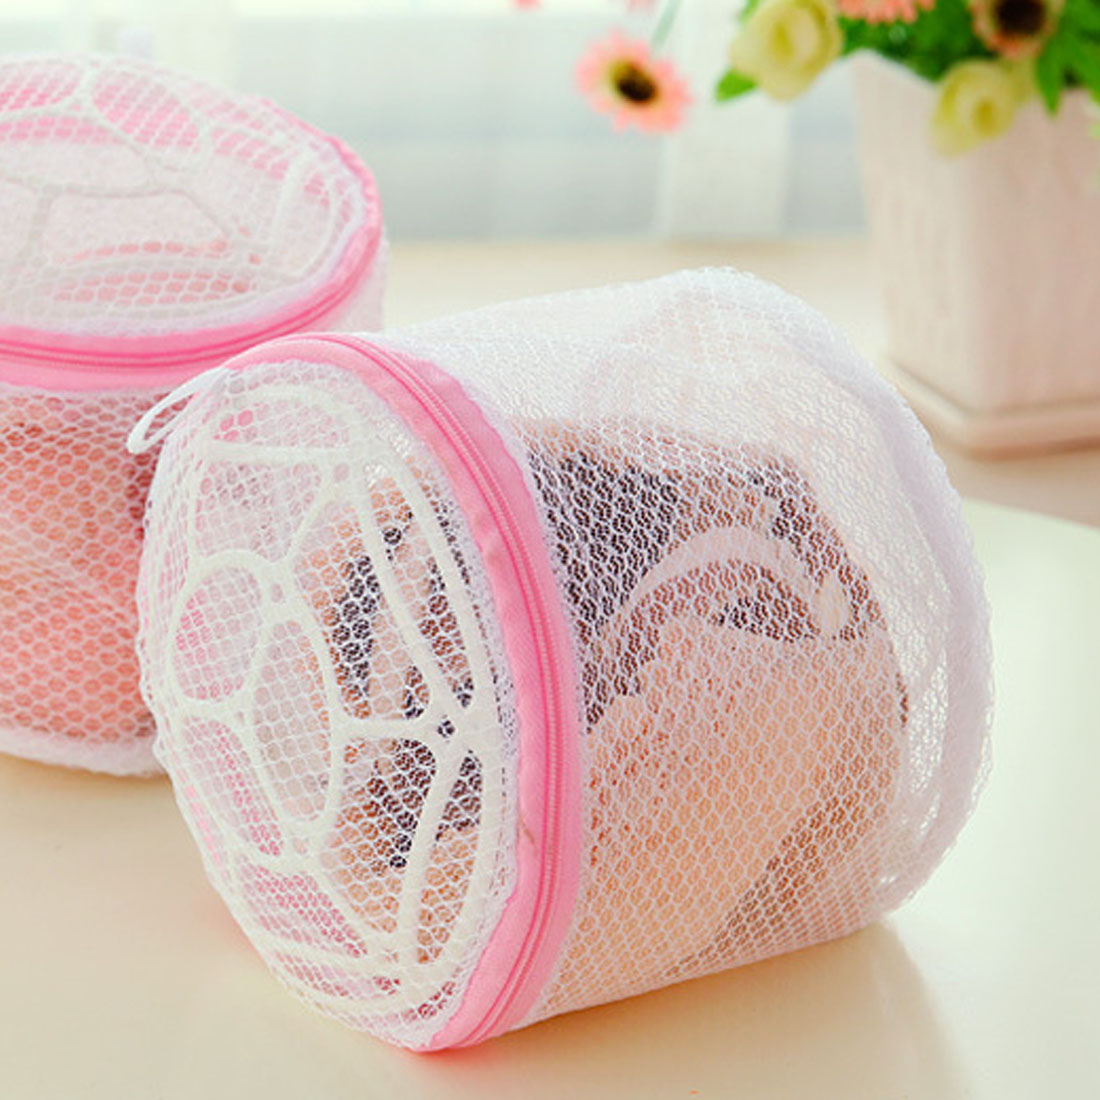 Bra-Care Basket Hanger Underwear Storage Laundry-Bags Multifunction Wash with Drying-Rack